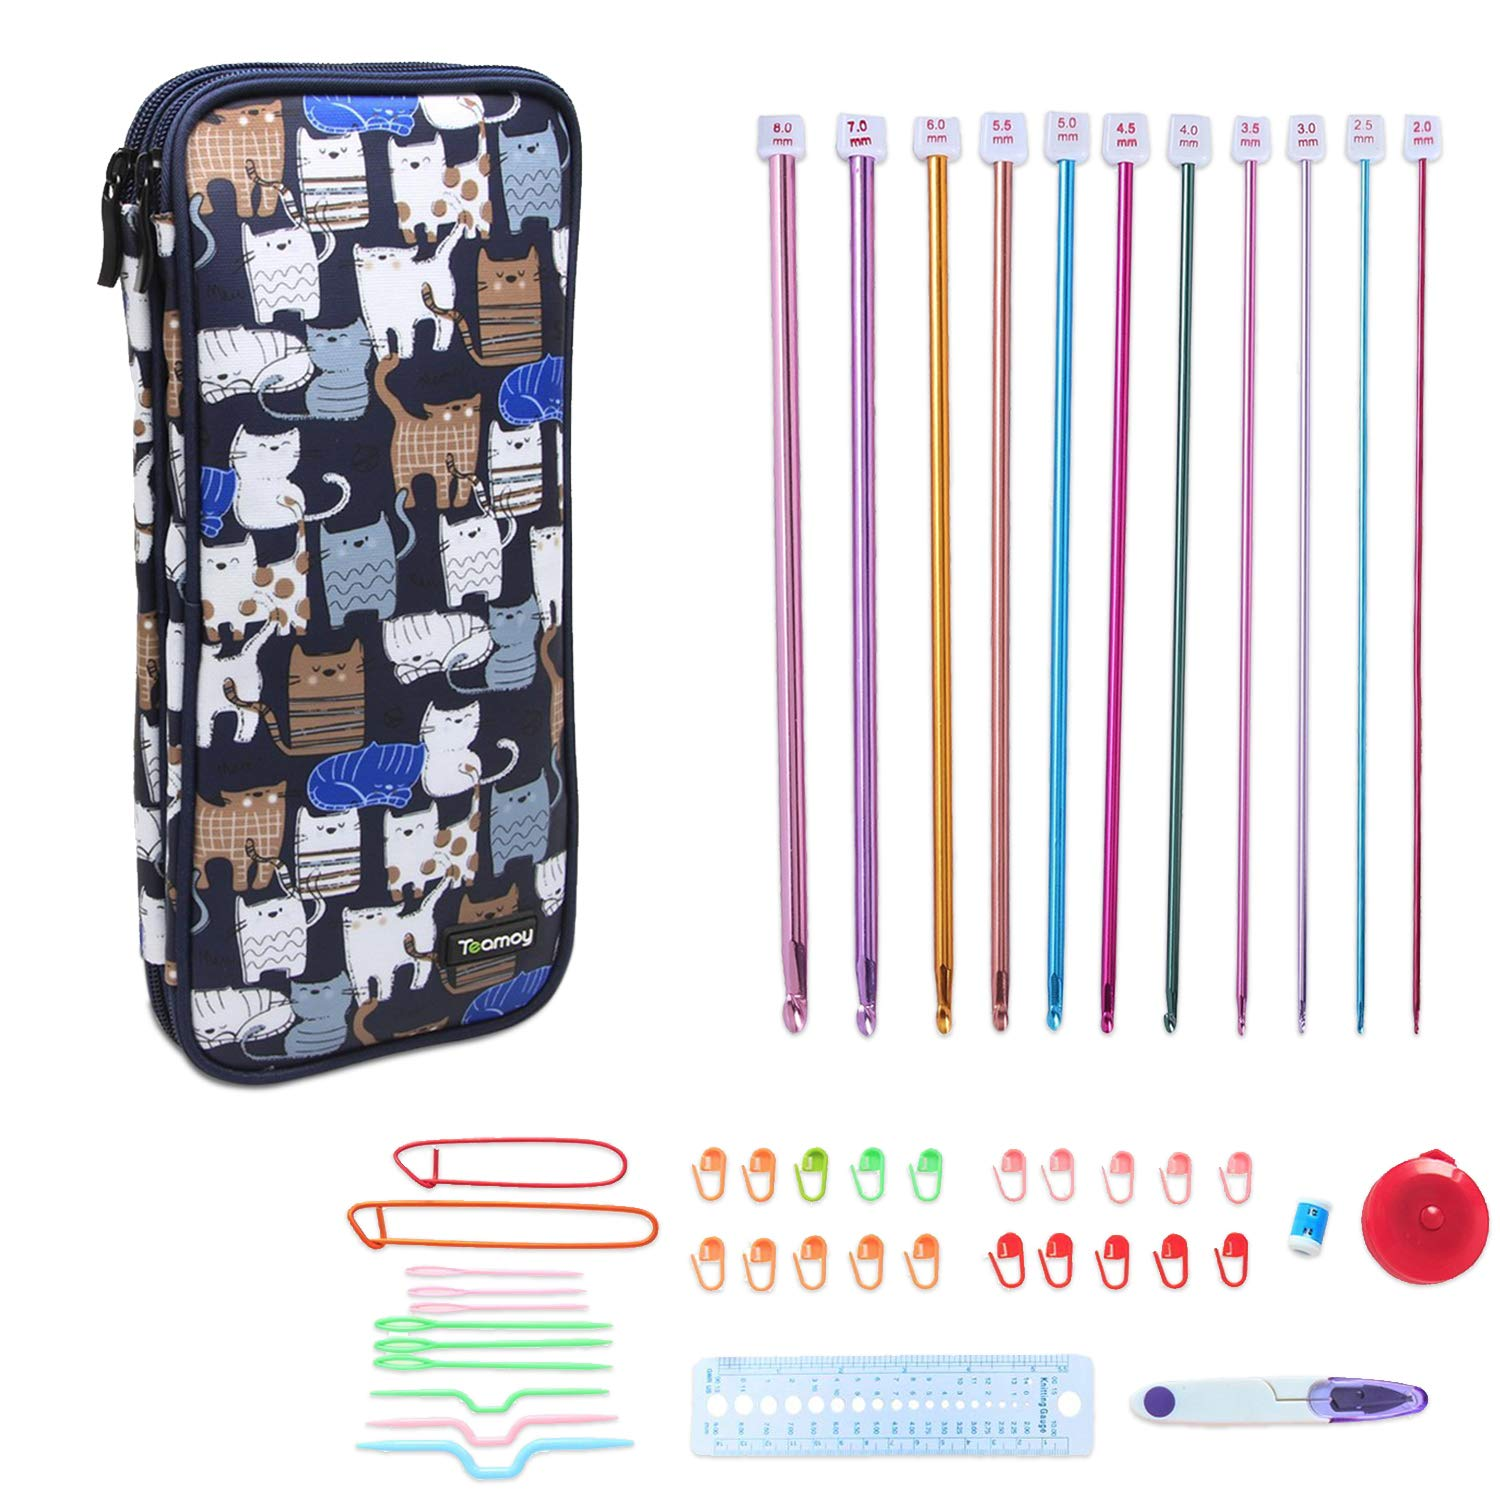 Teamoy Aluminum Tunisian Crochet Hooks Set, Afghan Kits with Case, 11pcs 2mm to 8mm Afghan Hooks and Accessories, Compact and Easy to Carry, Blue Cats Damero INC